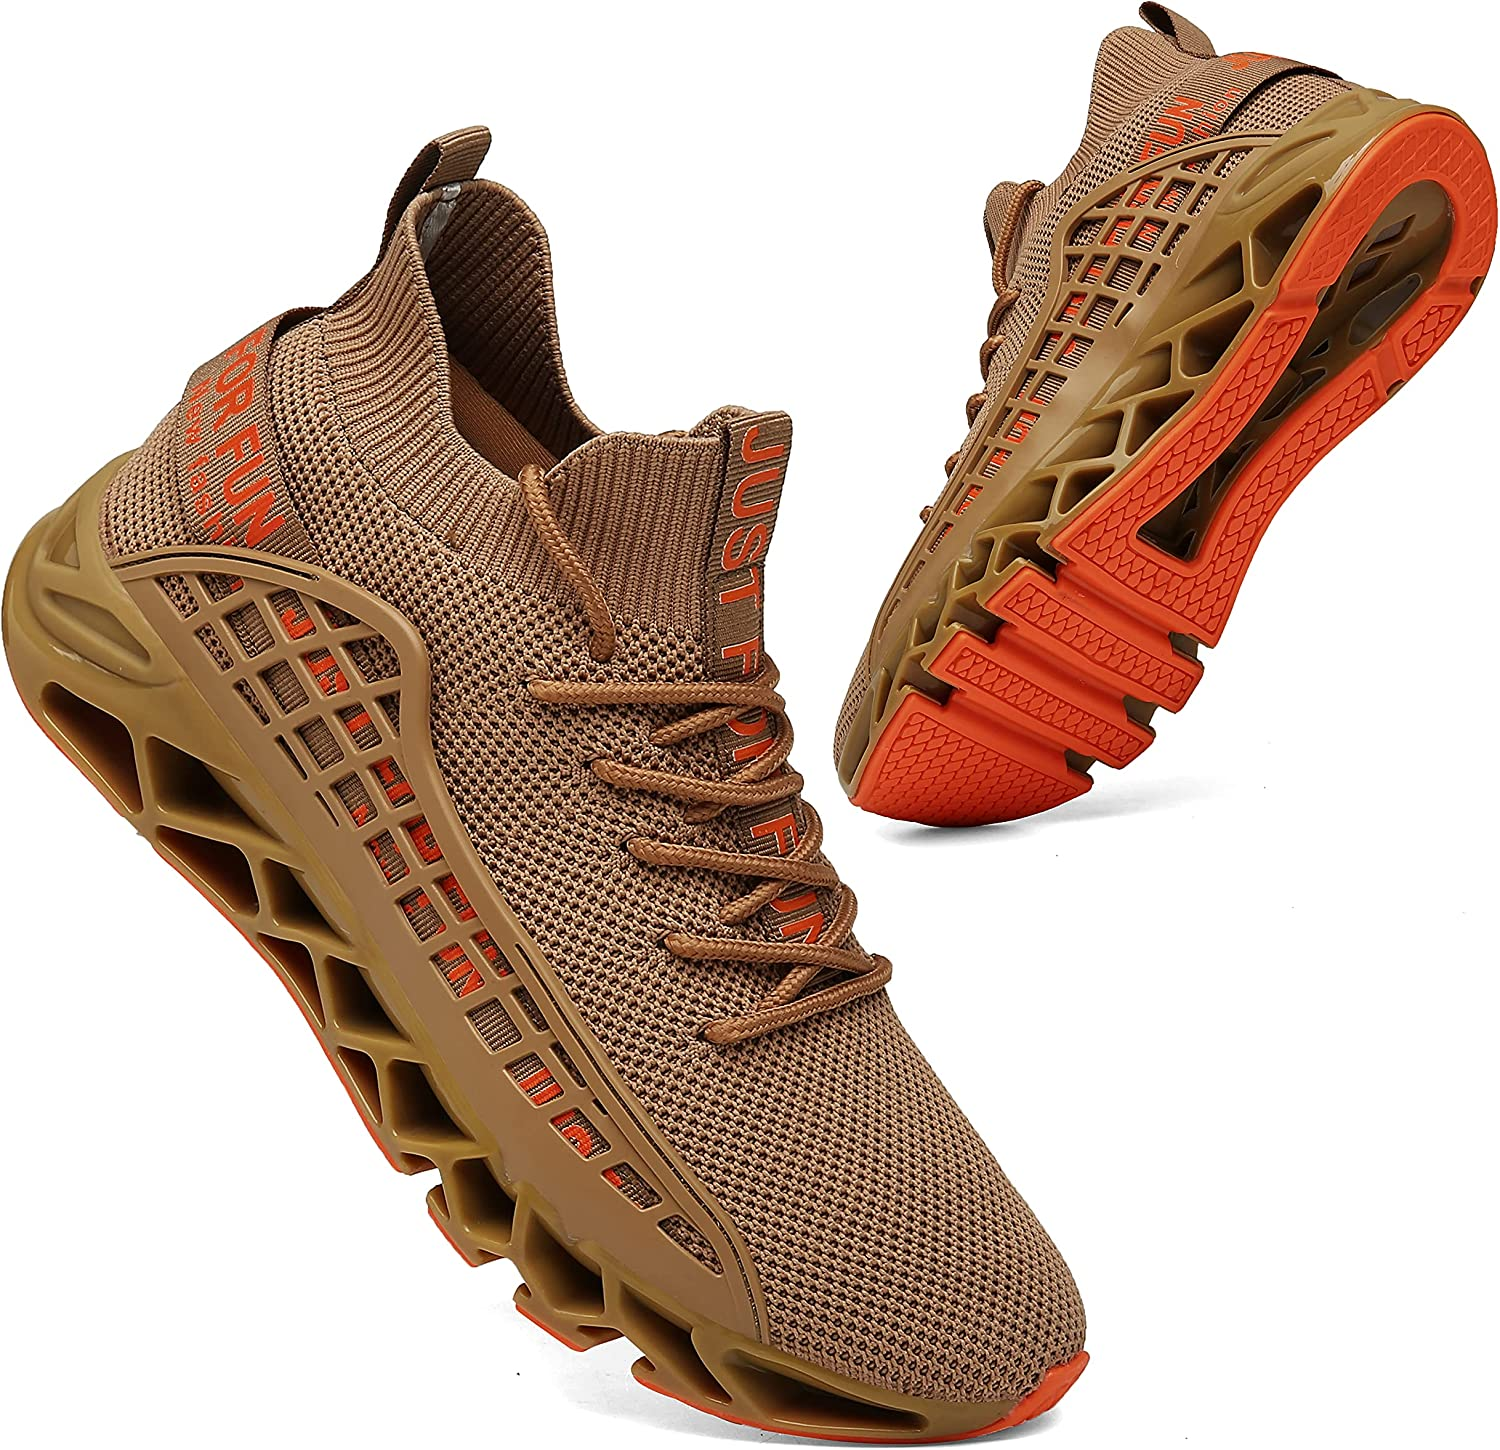 KUXIE famous Mens Running Bombing new work Shoes Athletic S Fashion Casual Walking